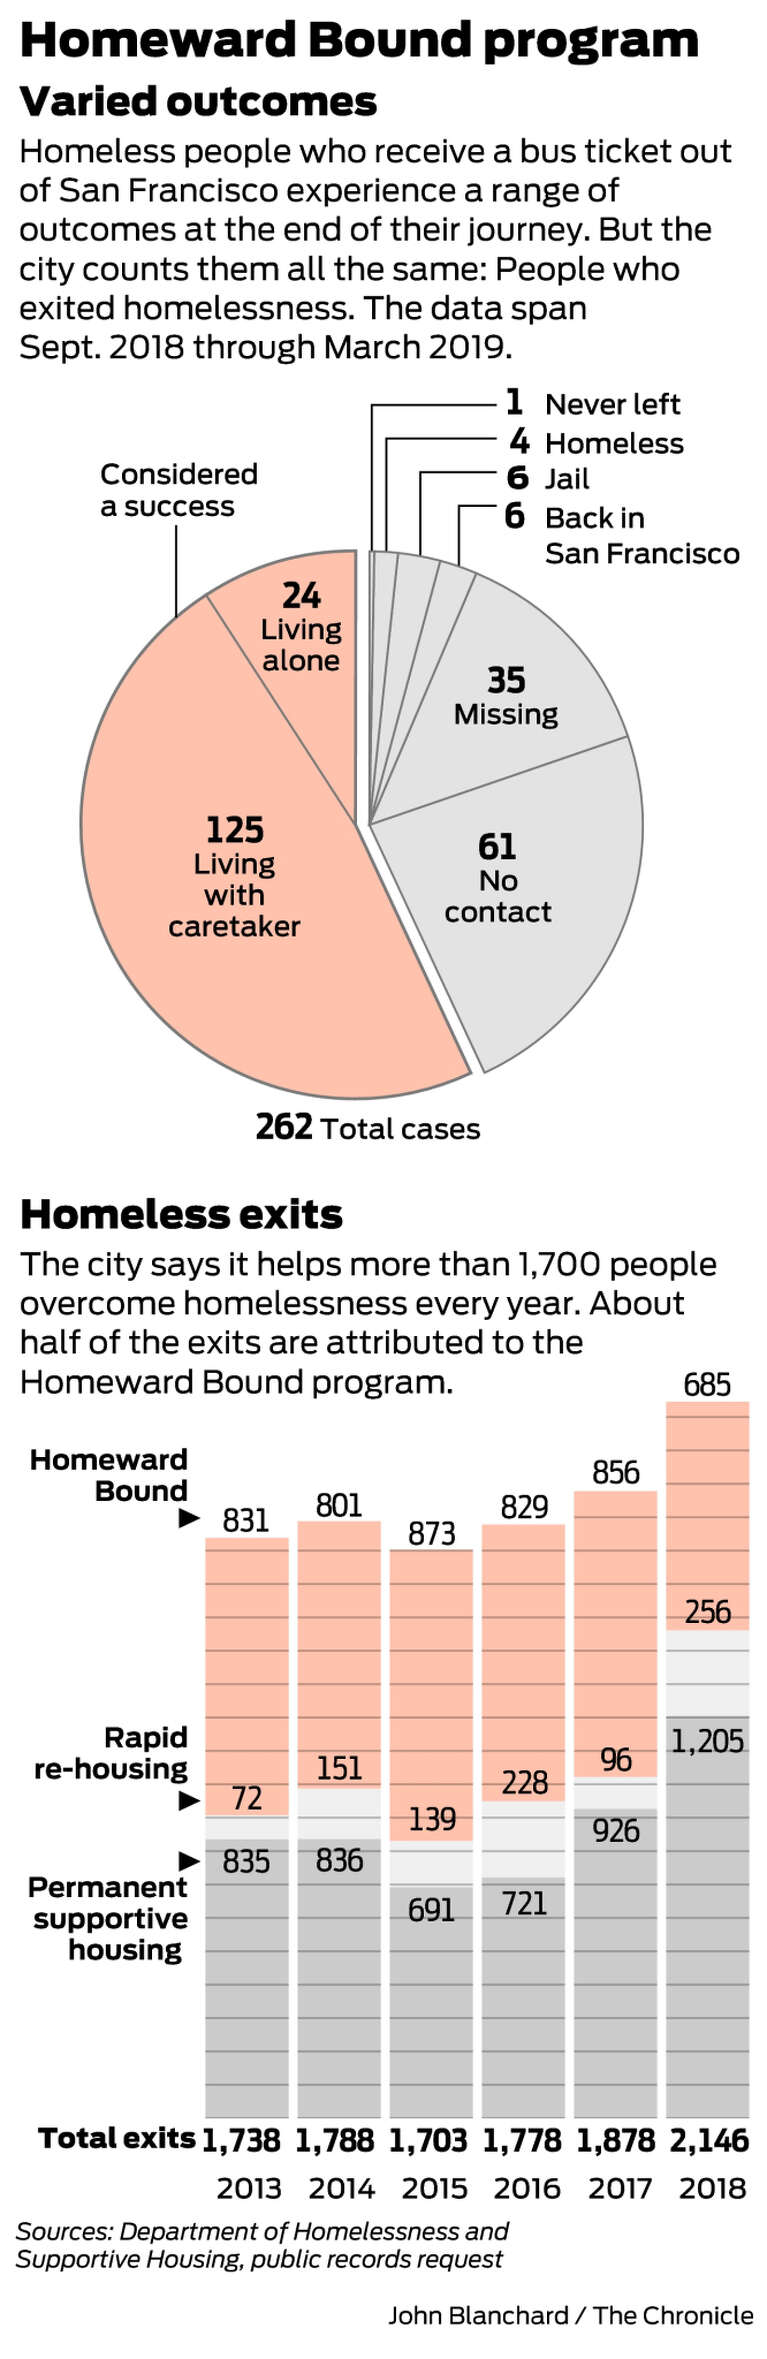 Hundreds of homeless people board a bus out of SF every year  What